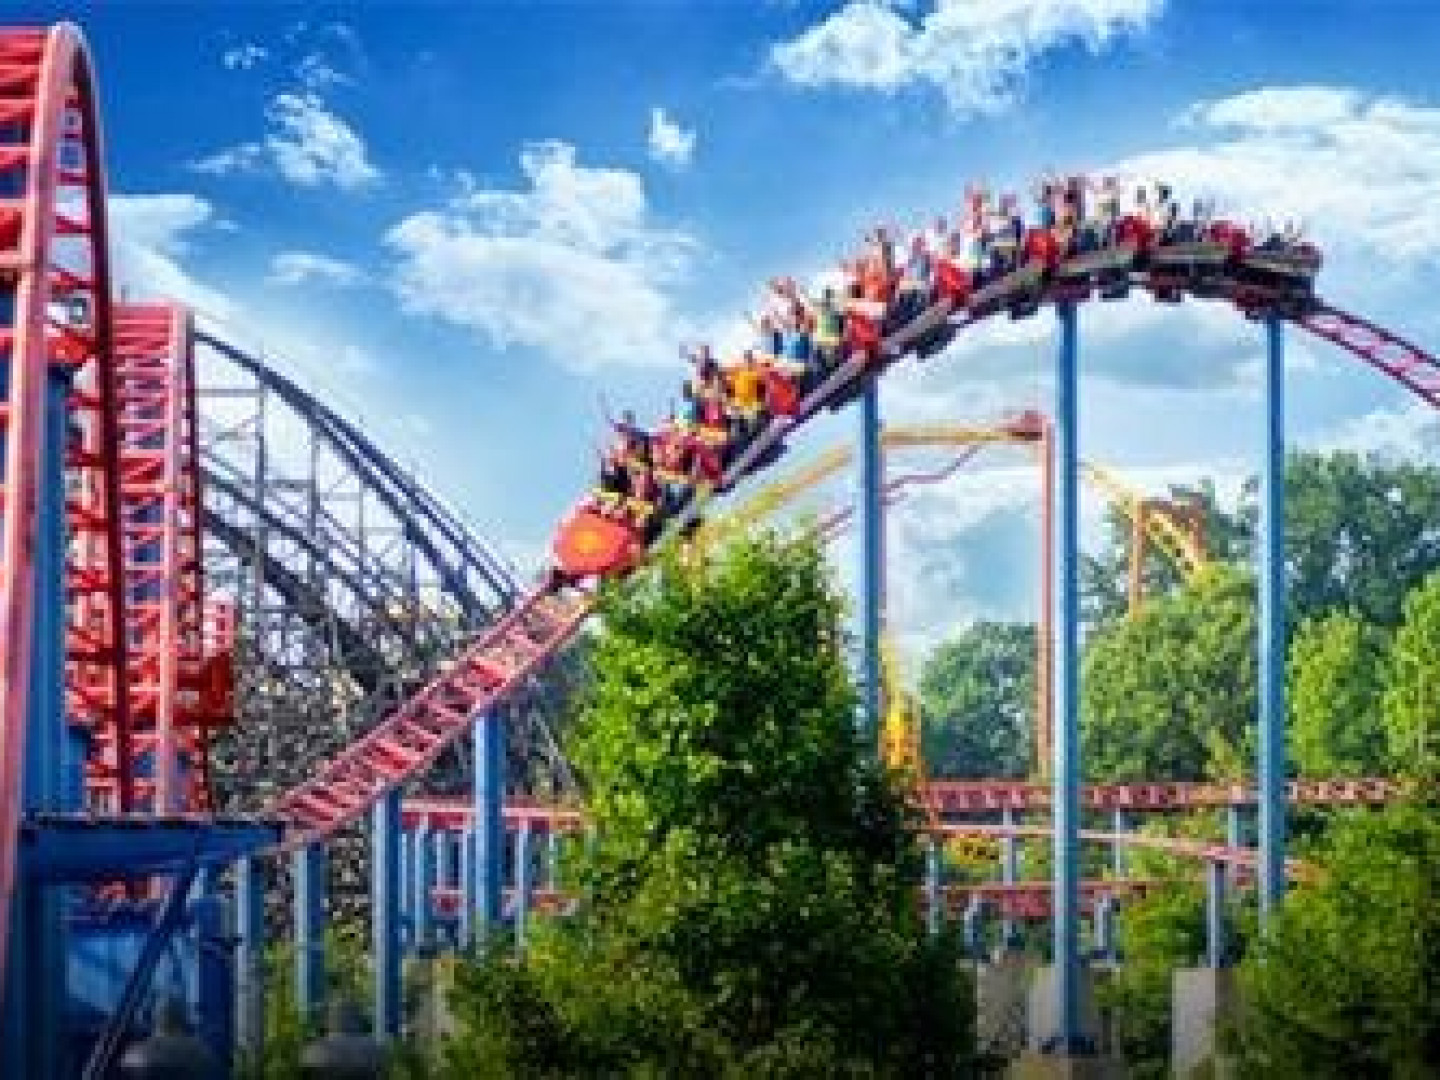 Six Flags New England (Agawam, MA)